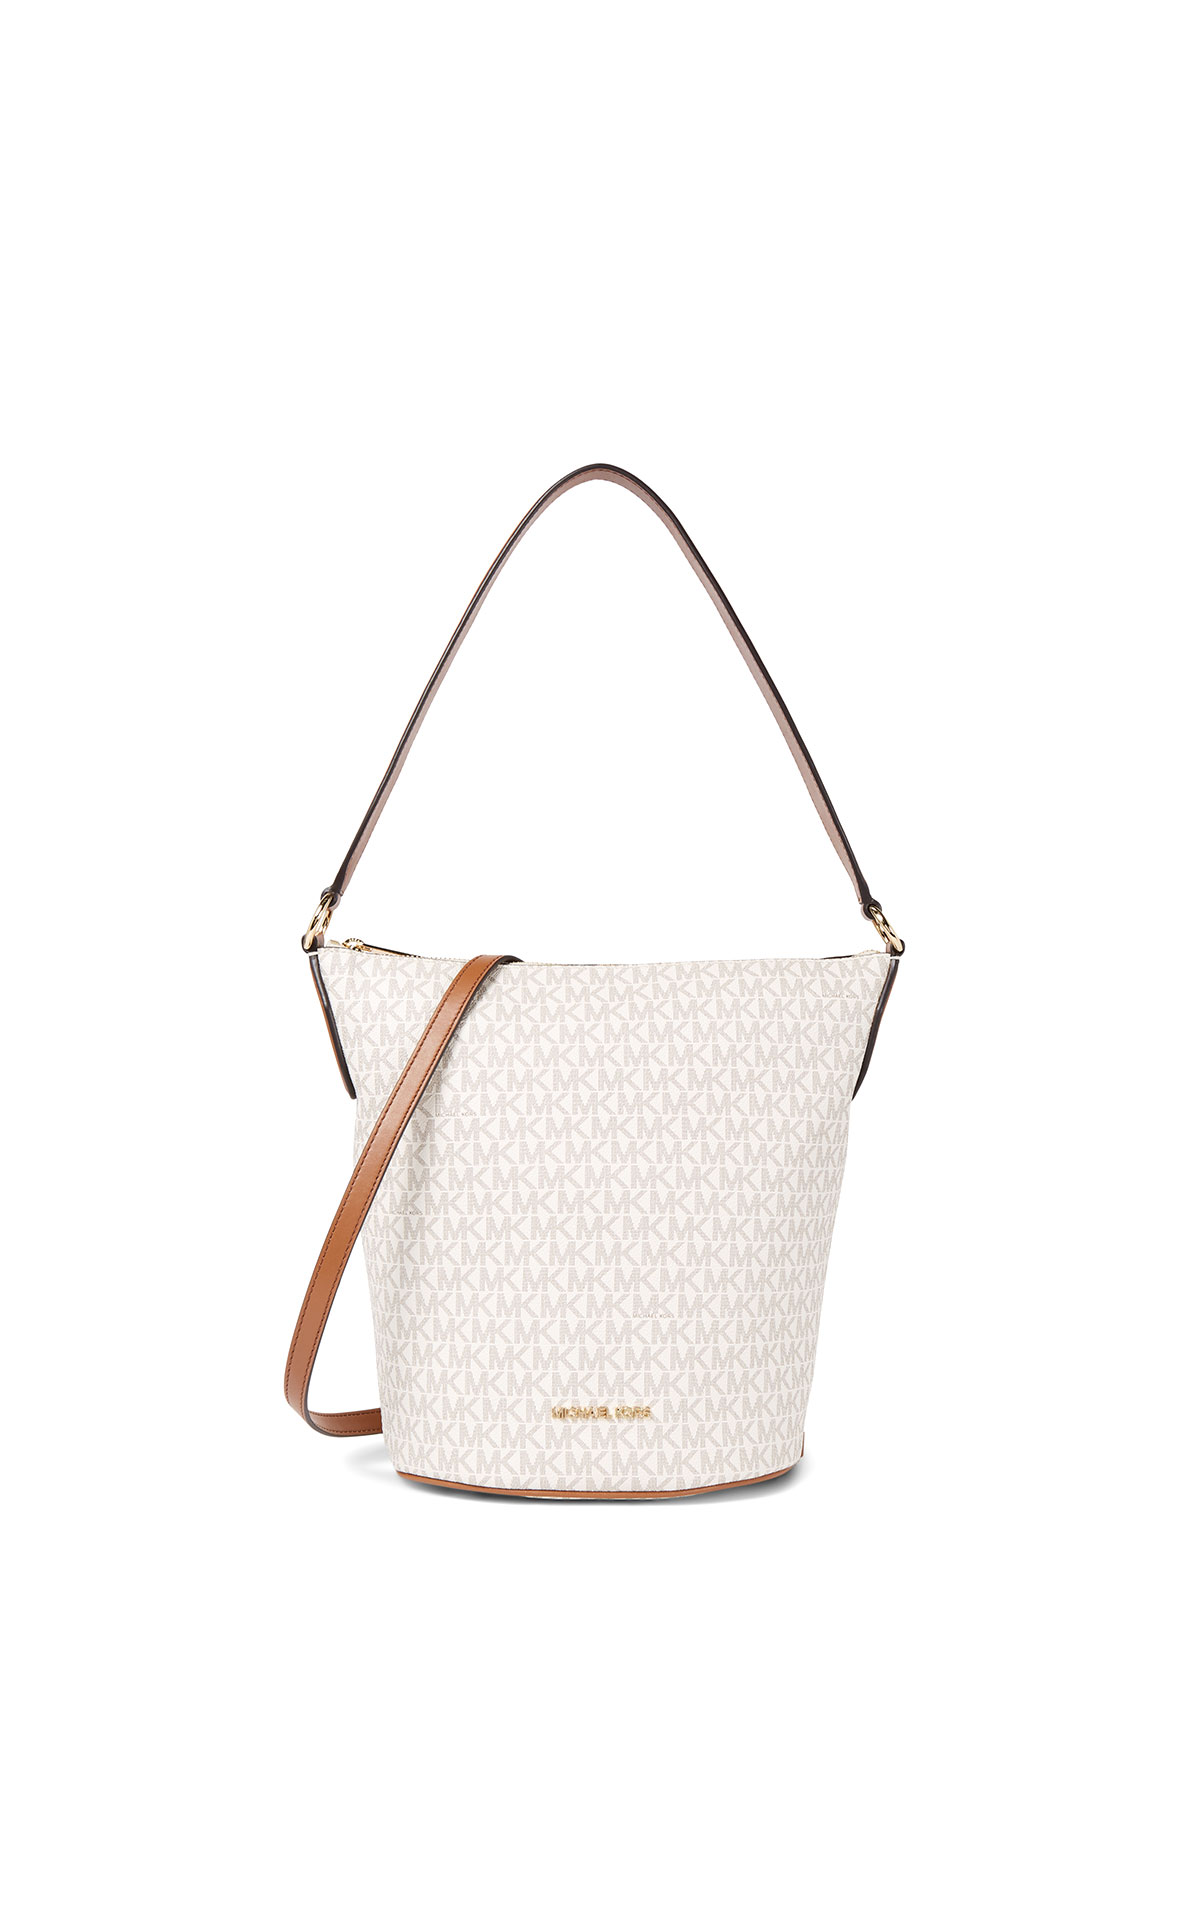 La Vallée Village Michael Kors Sac seau Brooke